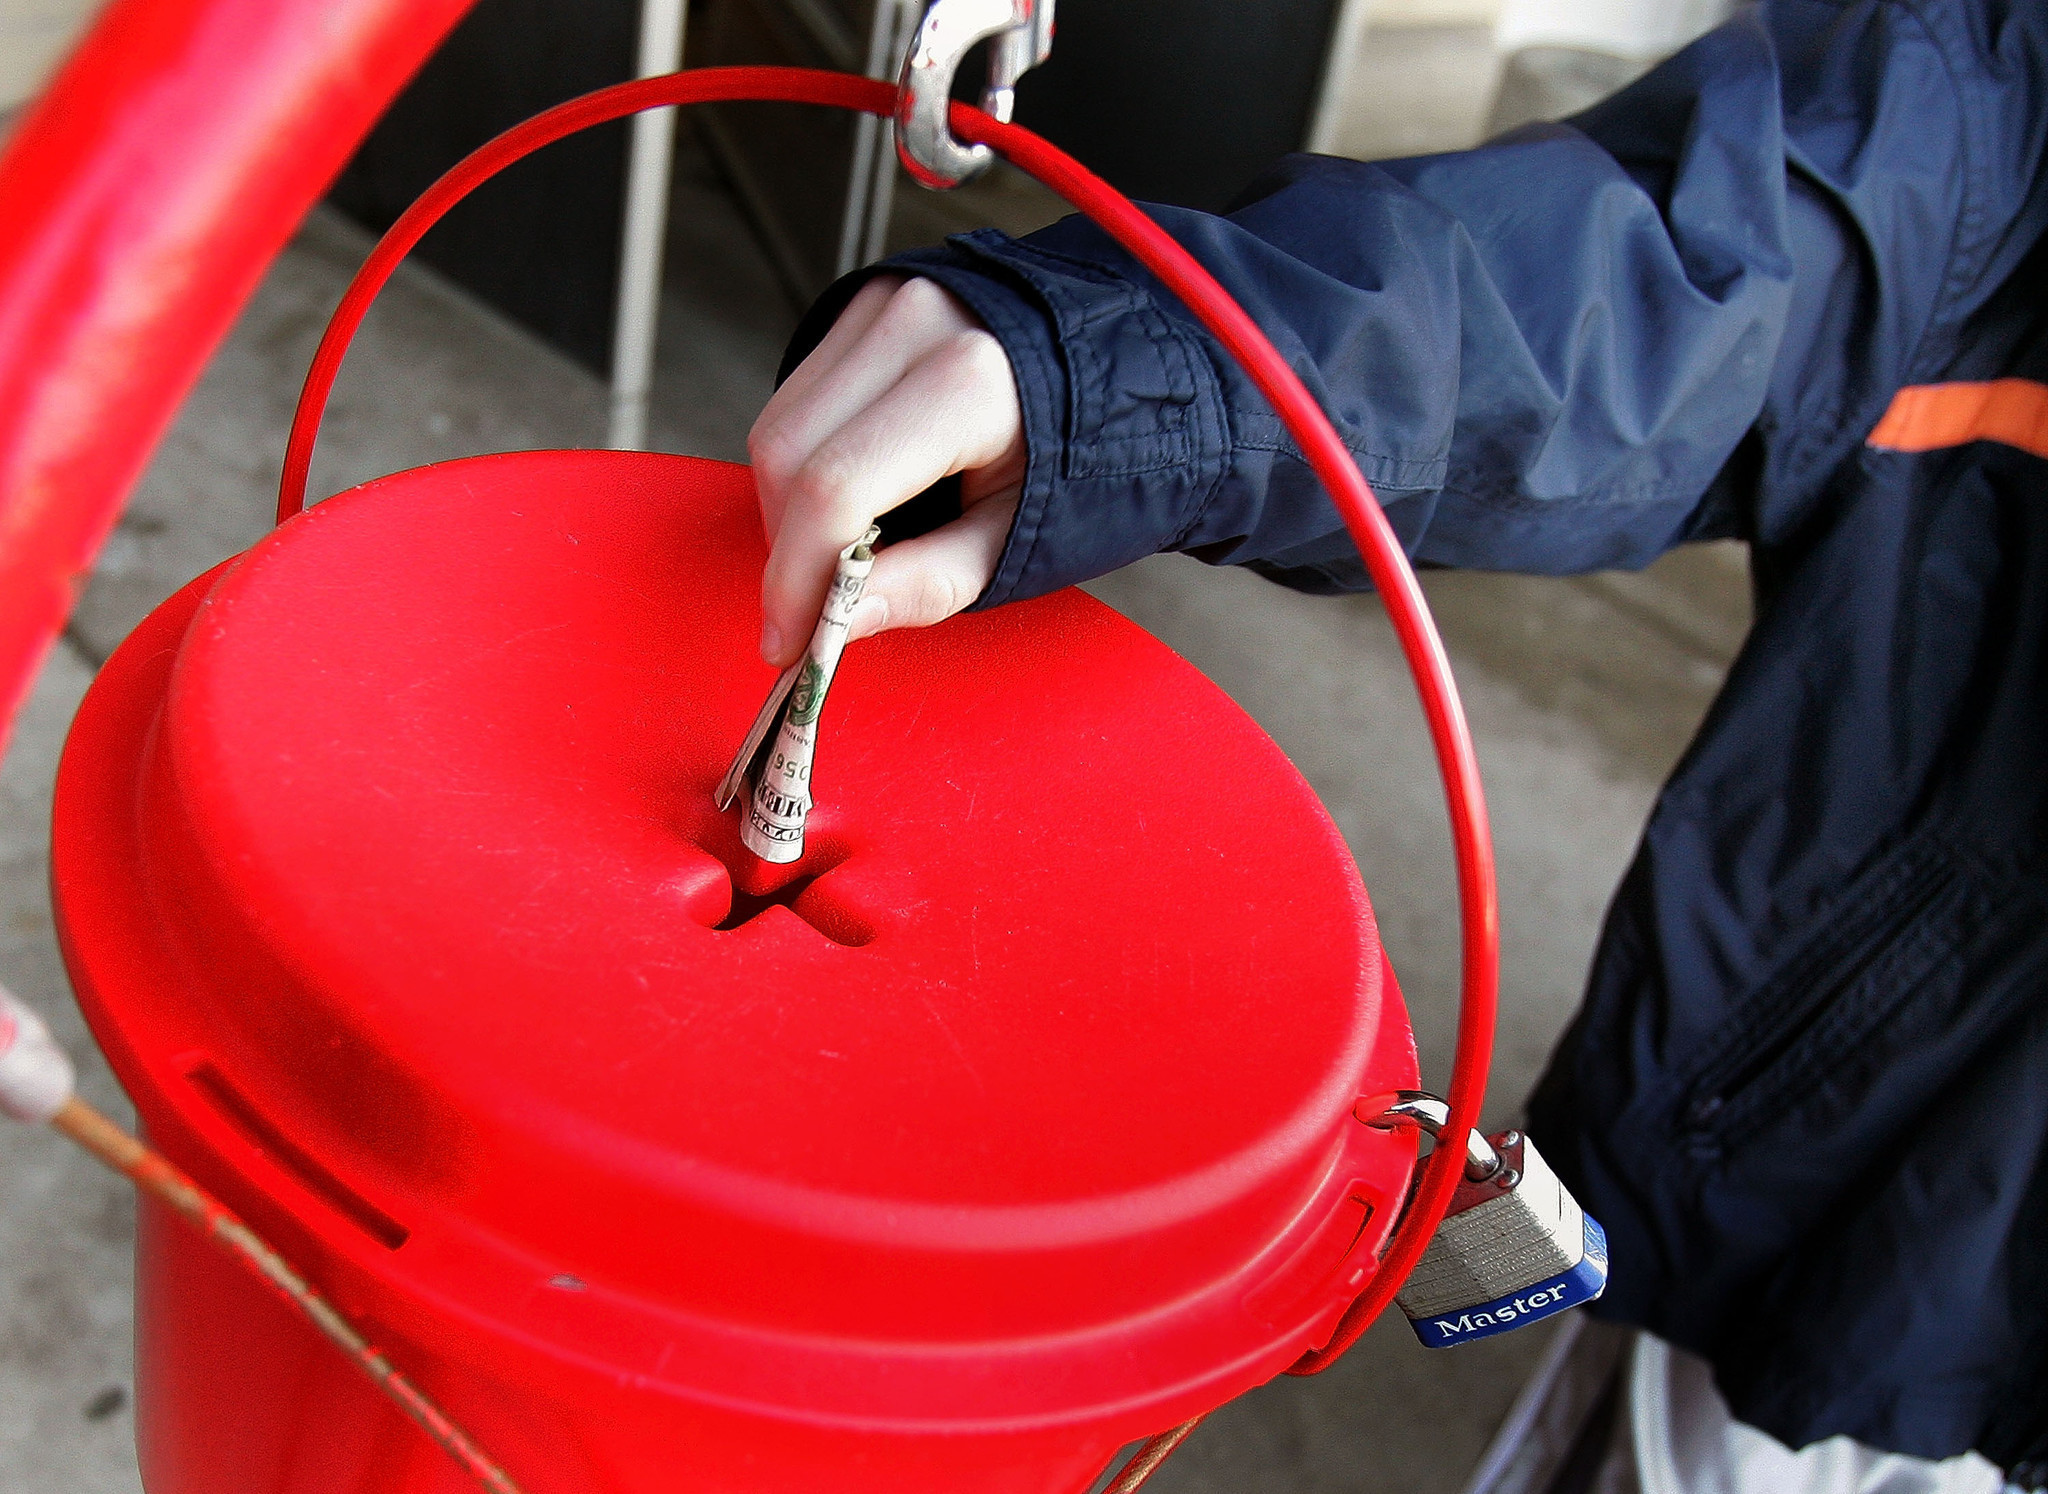 Gold coin worth $1,500 found among pocket change in Salvation Army kettle in Indiana